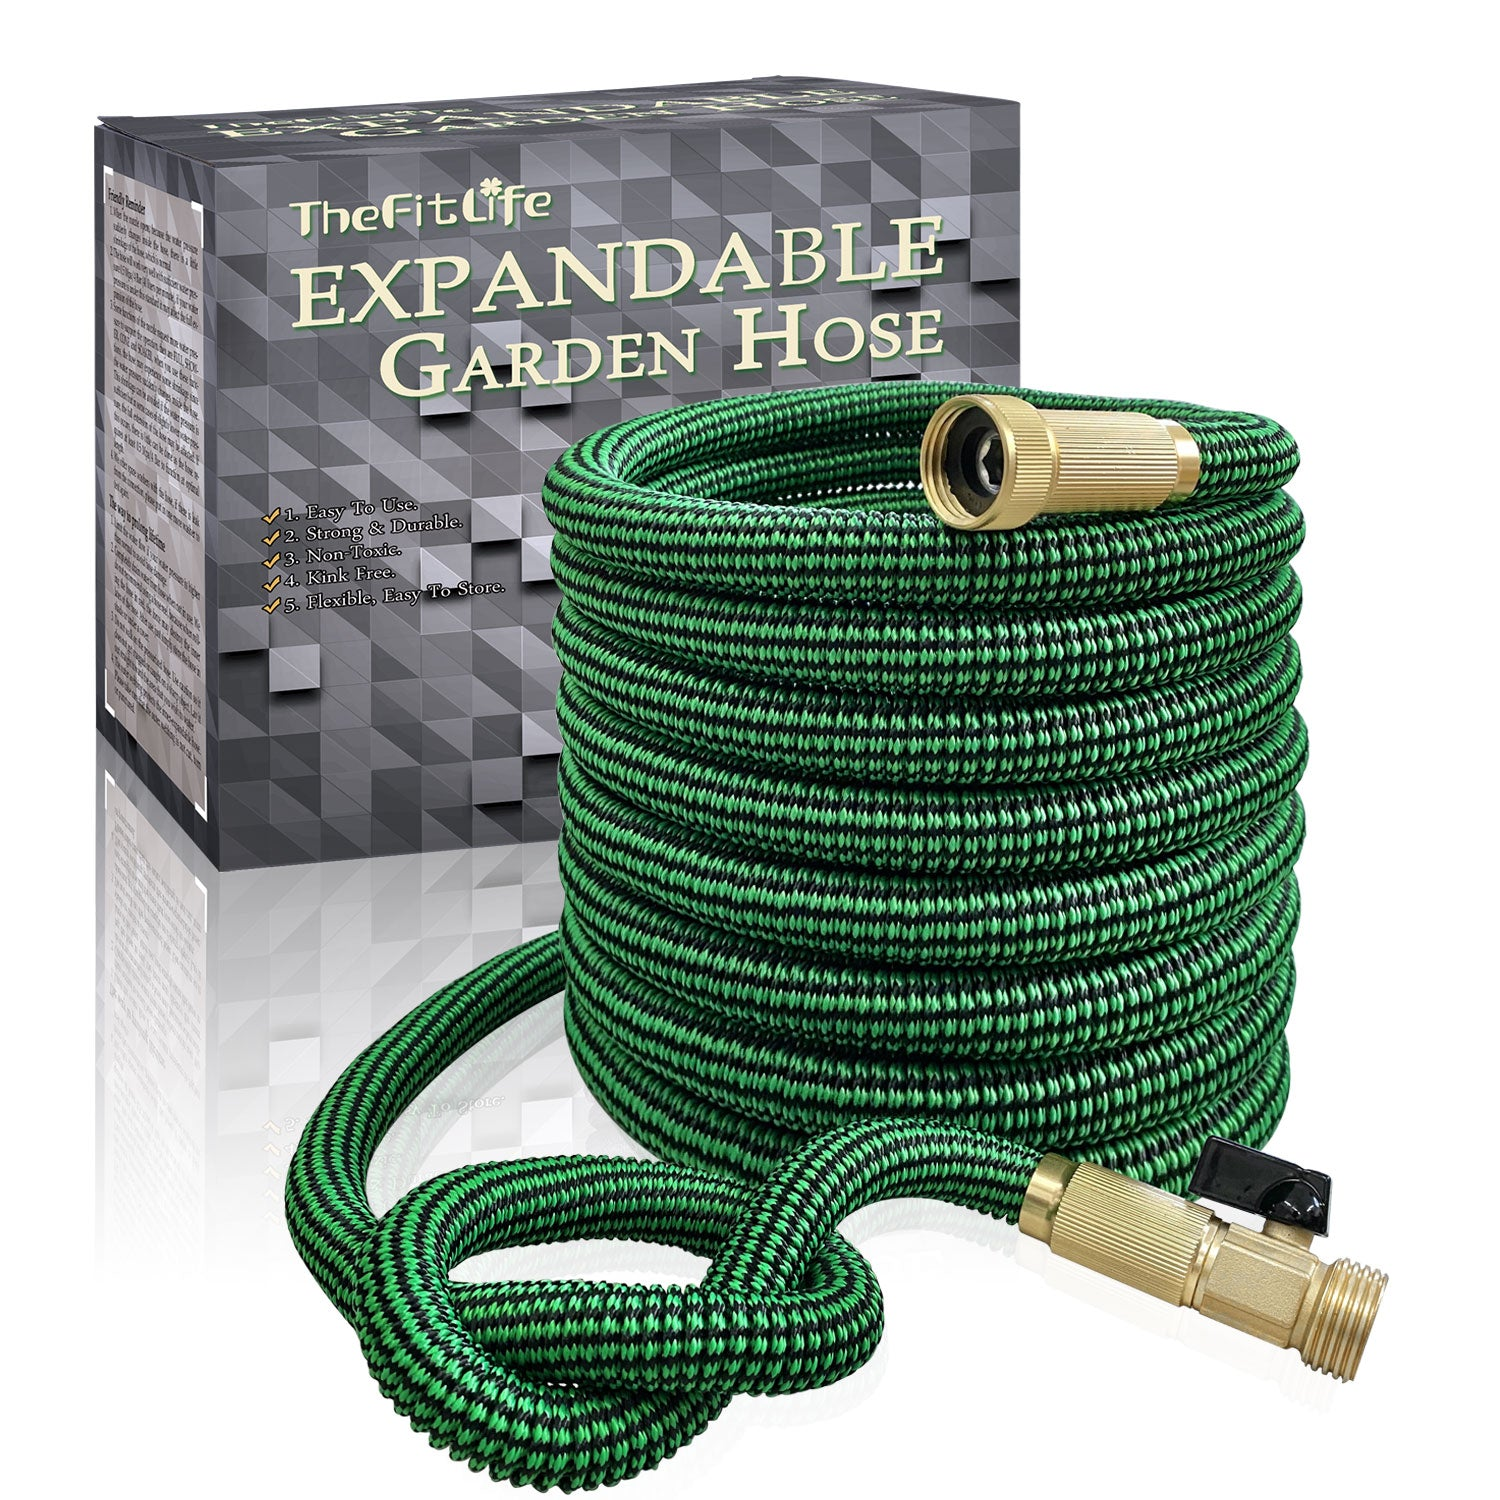 22 Meter Triple Core Latex and Solid Metal Fittings 8 Pattern Spray Nozzle EU Standard Expanding Kink Free Easy Storage Flexible Water Hose-75 Feet TheFitLife Expandable Garden Hose Pipe